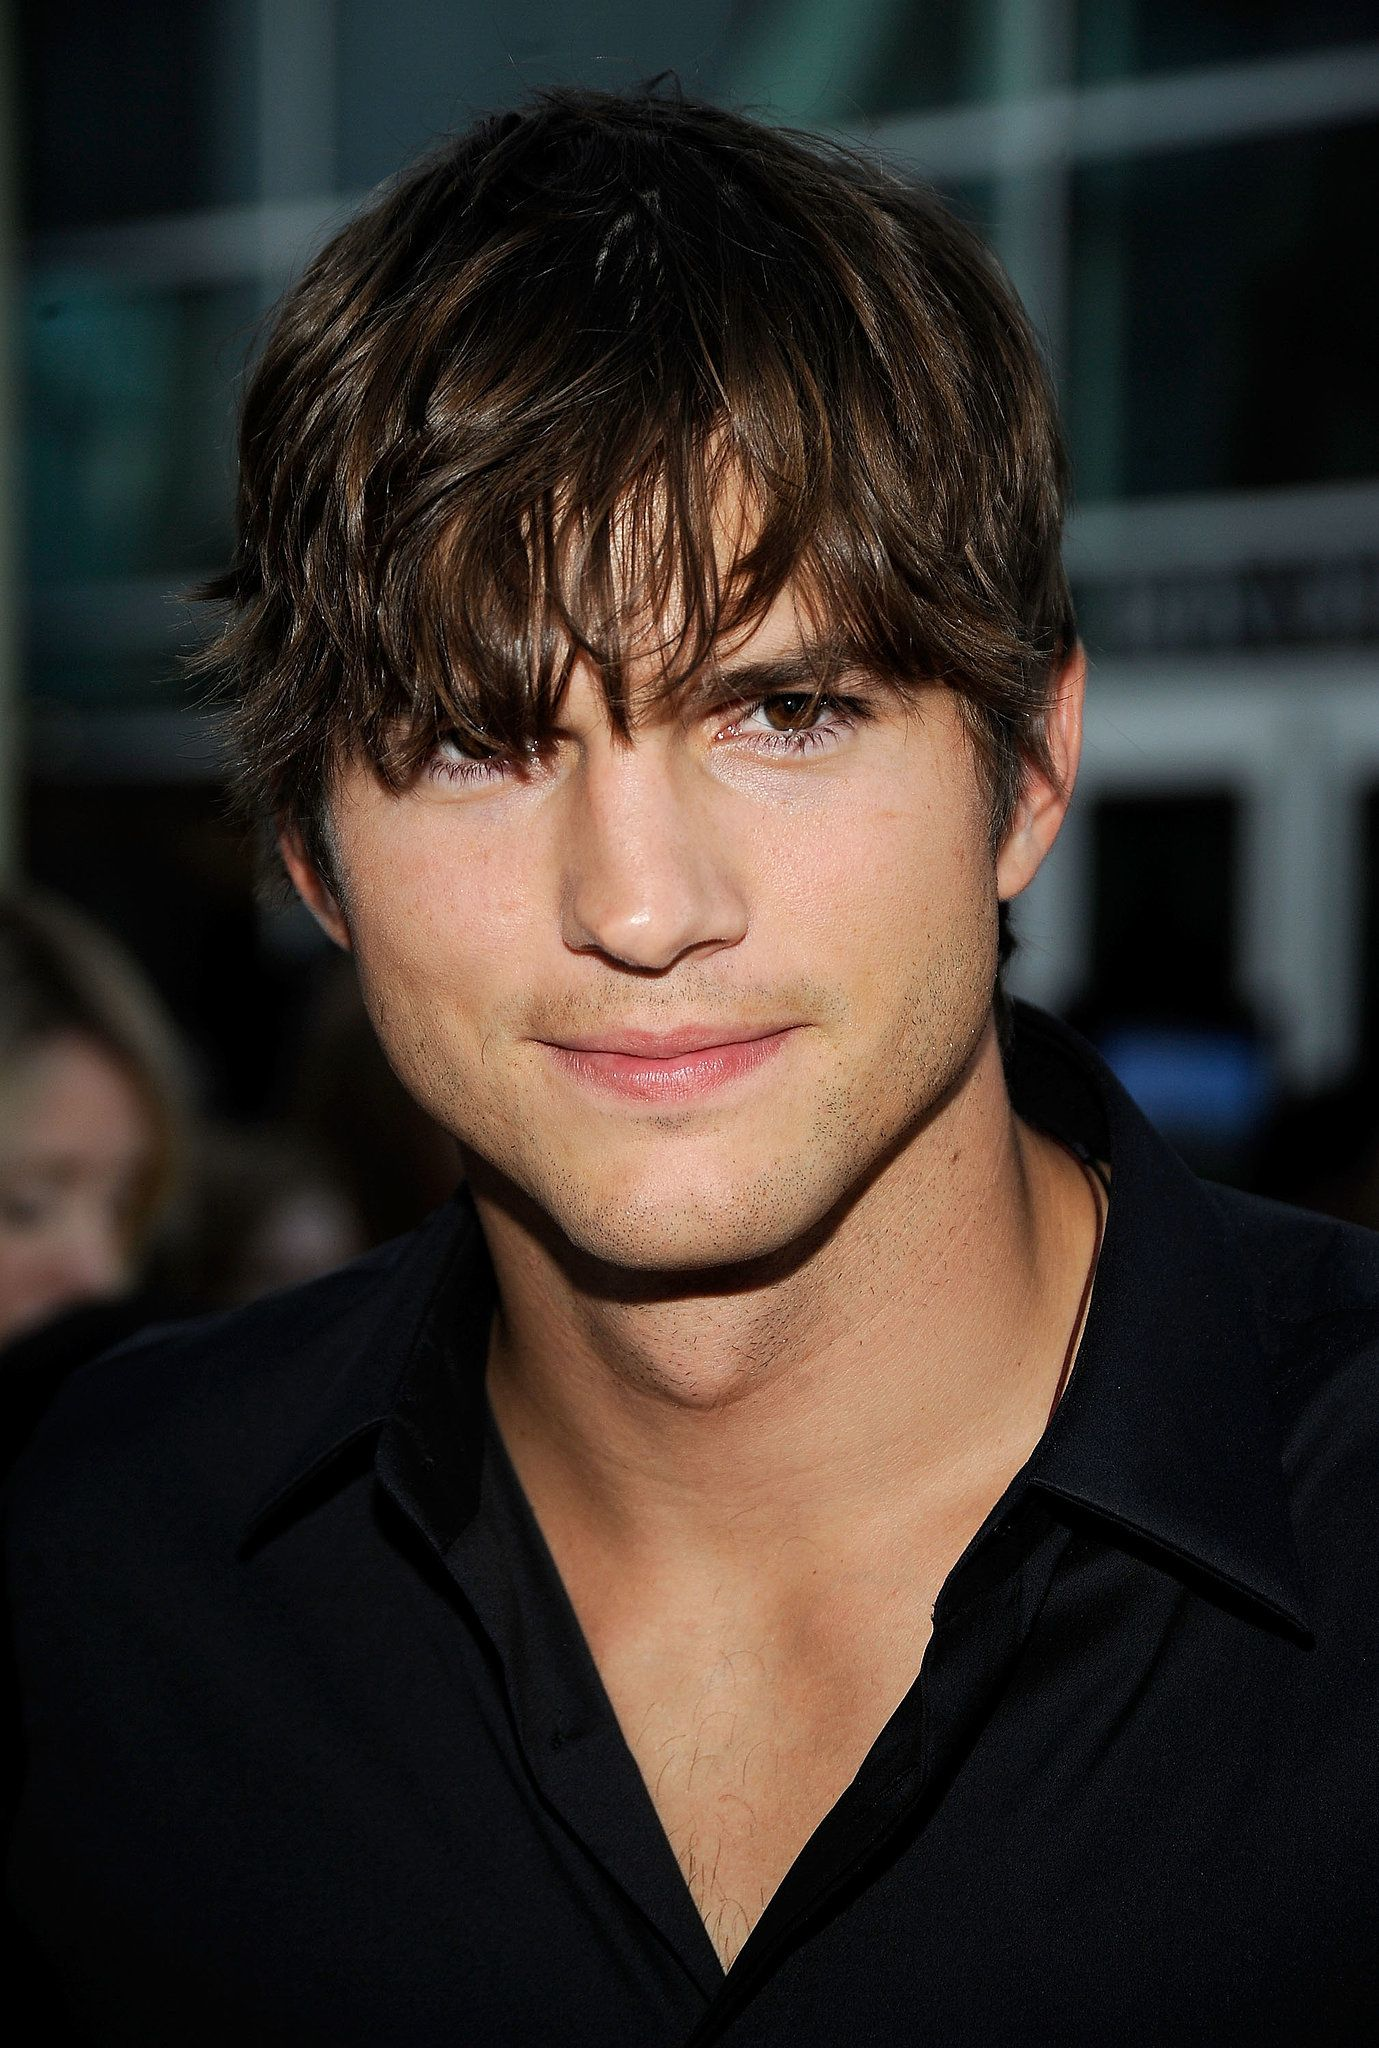 Long hair, short hair — everything worked. | Ashton ... Ashton Kutcher